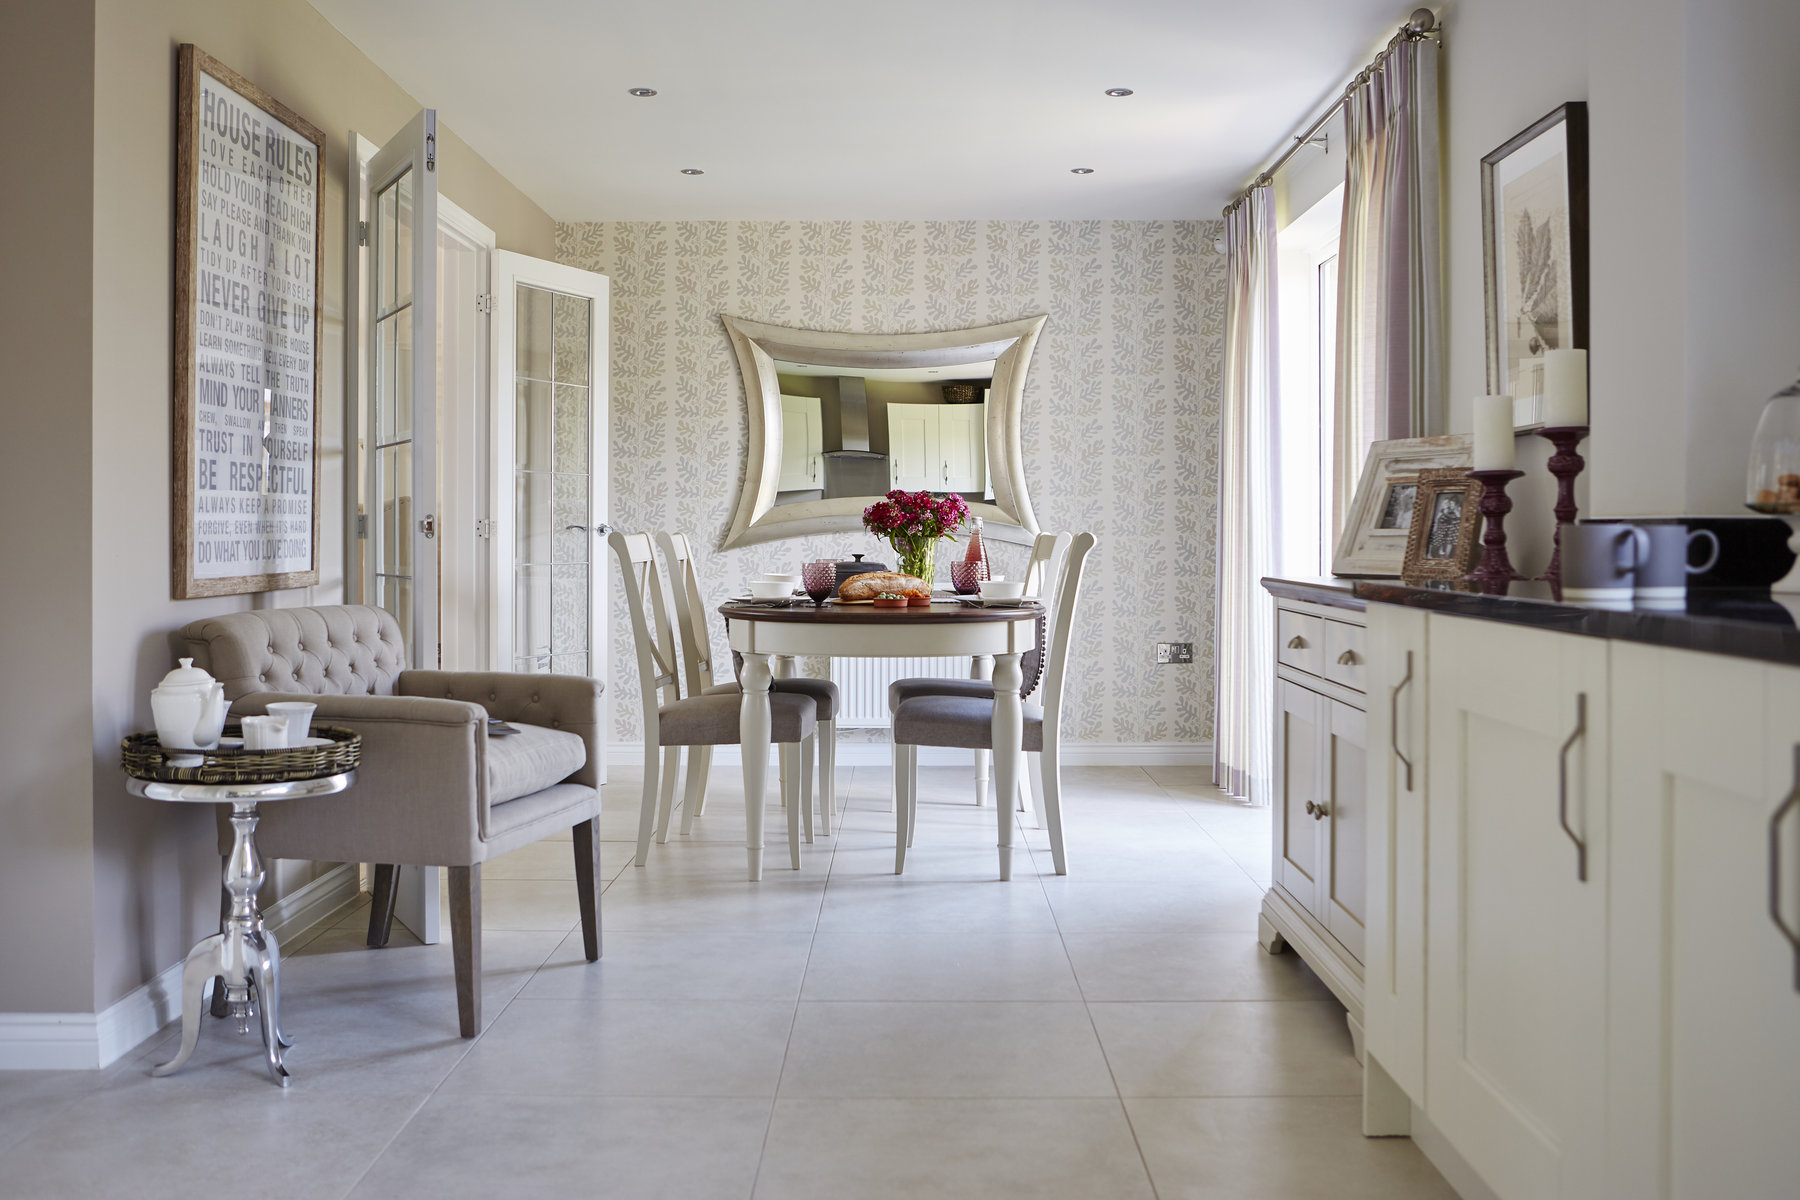 rsz_tw_mids_burlington_fields_shifnal_pa48_shelford_kitchen_dining